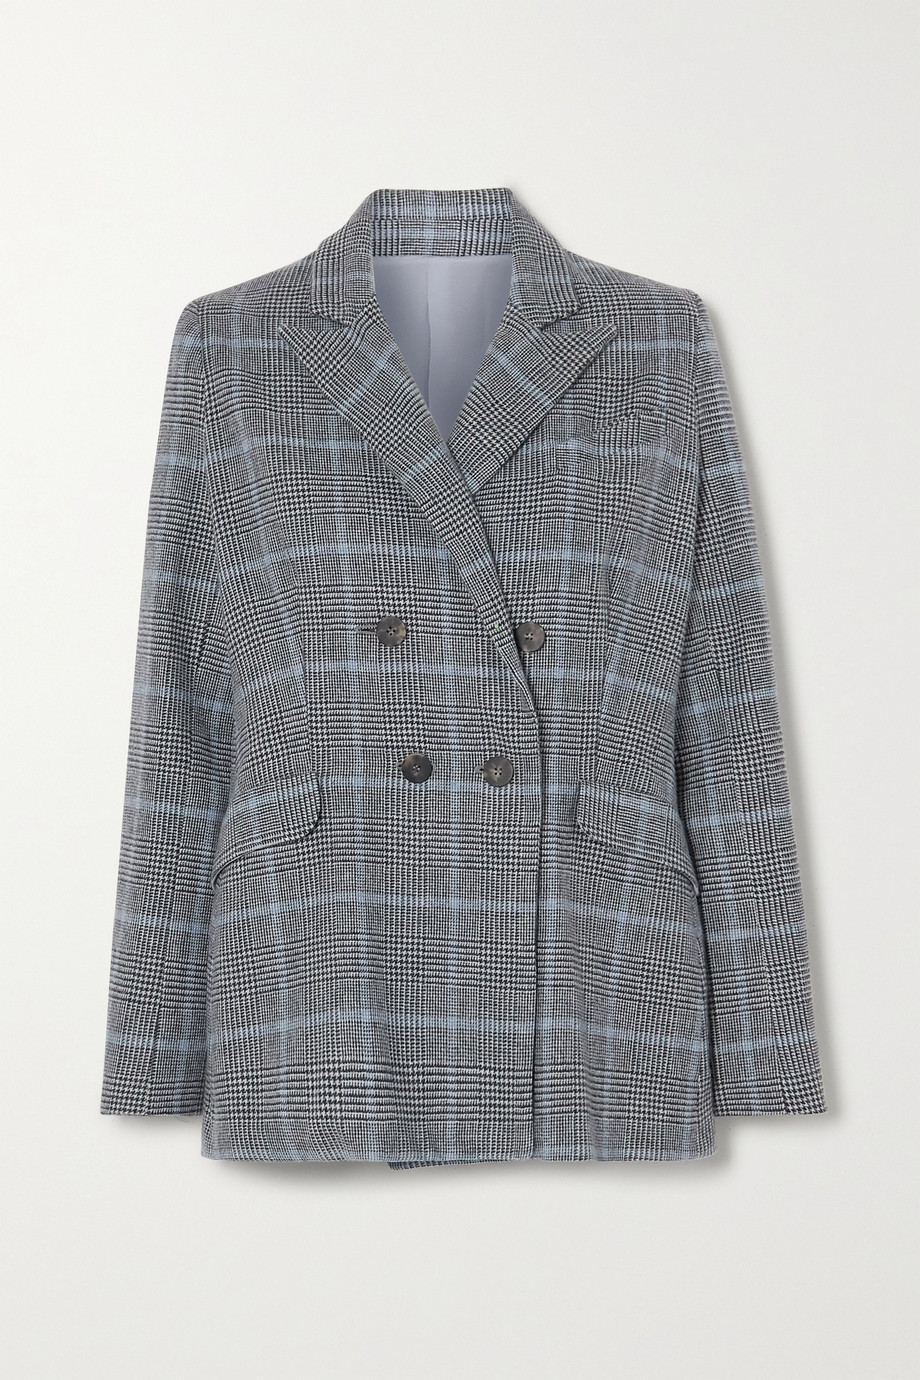 YOOX NET-A-PORTER For The Prince's Foundation Double-breasted Prince of Wales checked cashmere blazer